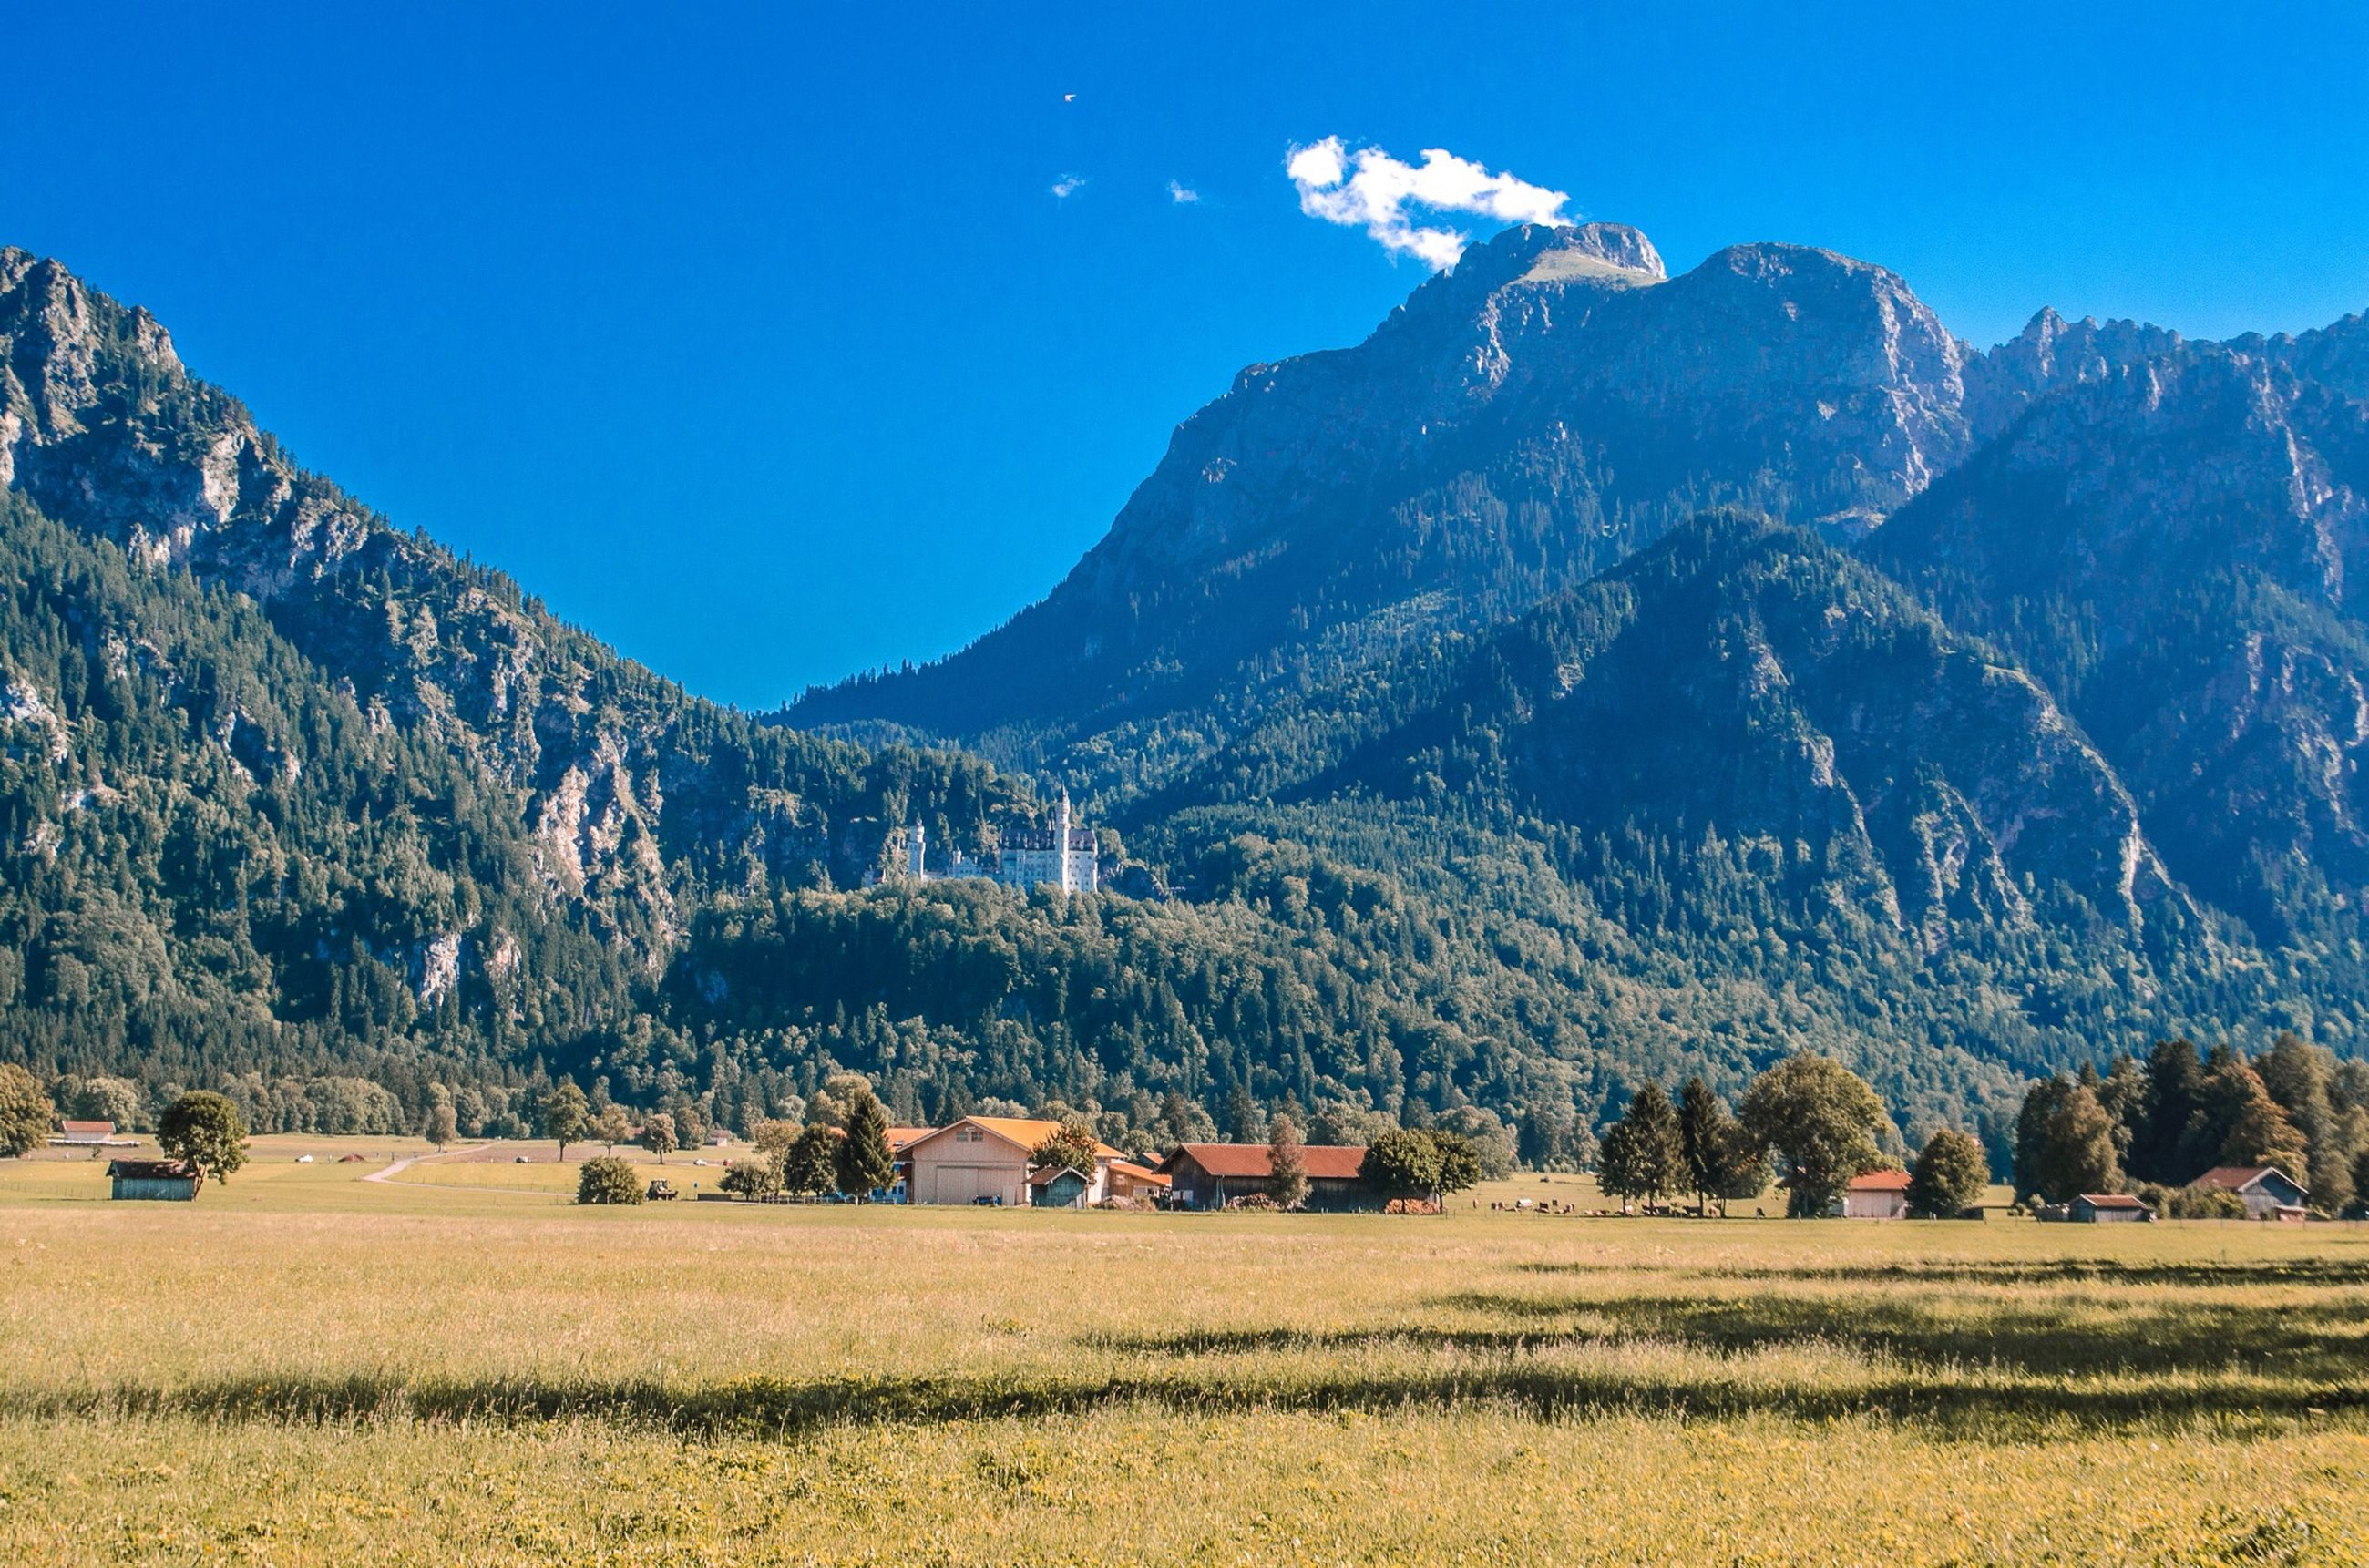 mountain, blue, clear sky, landscape, tranquil scene, tranquility, mountain range, scenics, beauty in nature, tree, field, nature, rural scene, non-urban scene, grass, growth, house, sky, sunlight, copy space